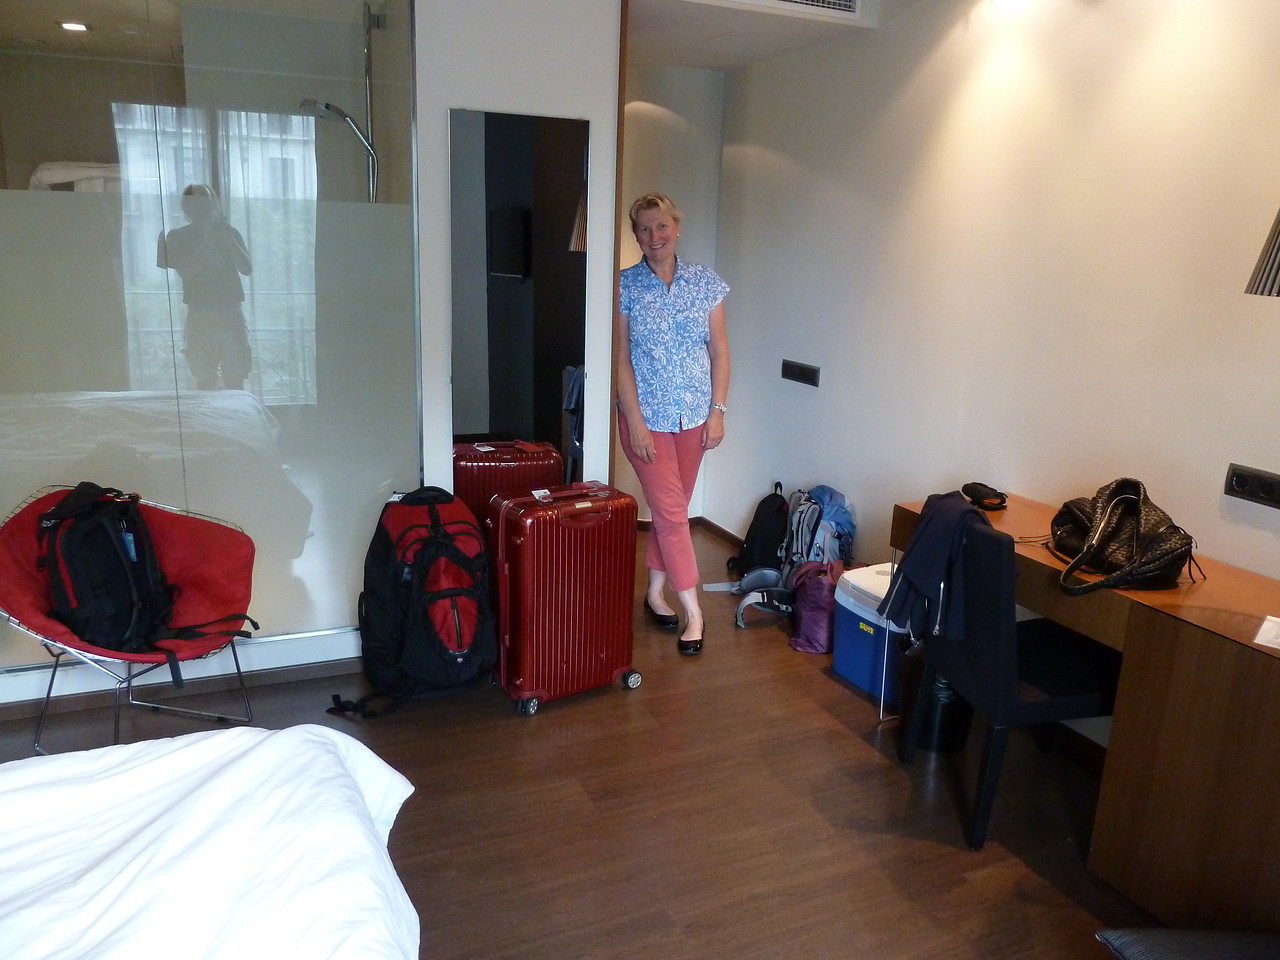 Our very spacious and modern Barcelona hotel room!! Just loved it!!